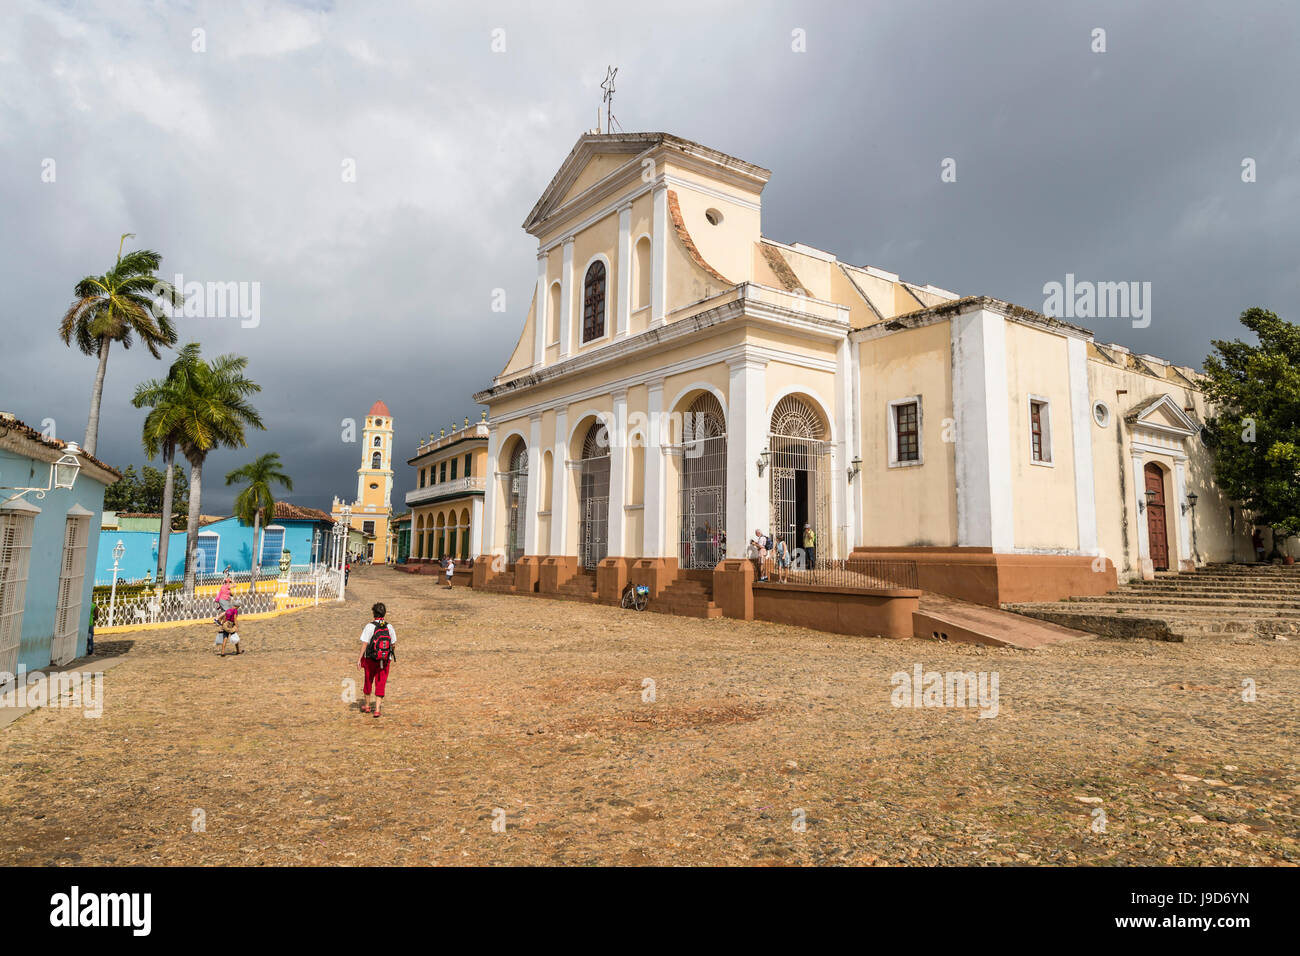 Exterior view of the Iglesia Parroquial de la Santisima, Trinidad, UNESCO World Heritage Site, Cuba, West Indies, - Stock Image